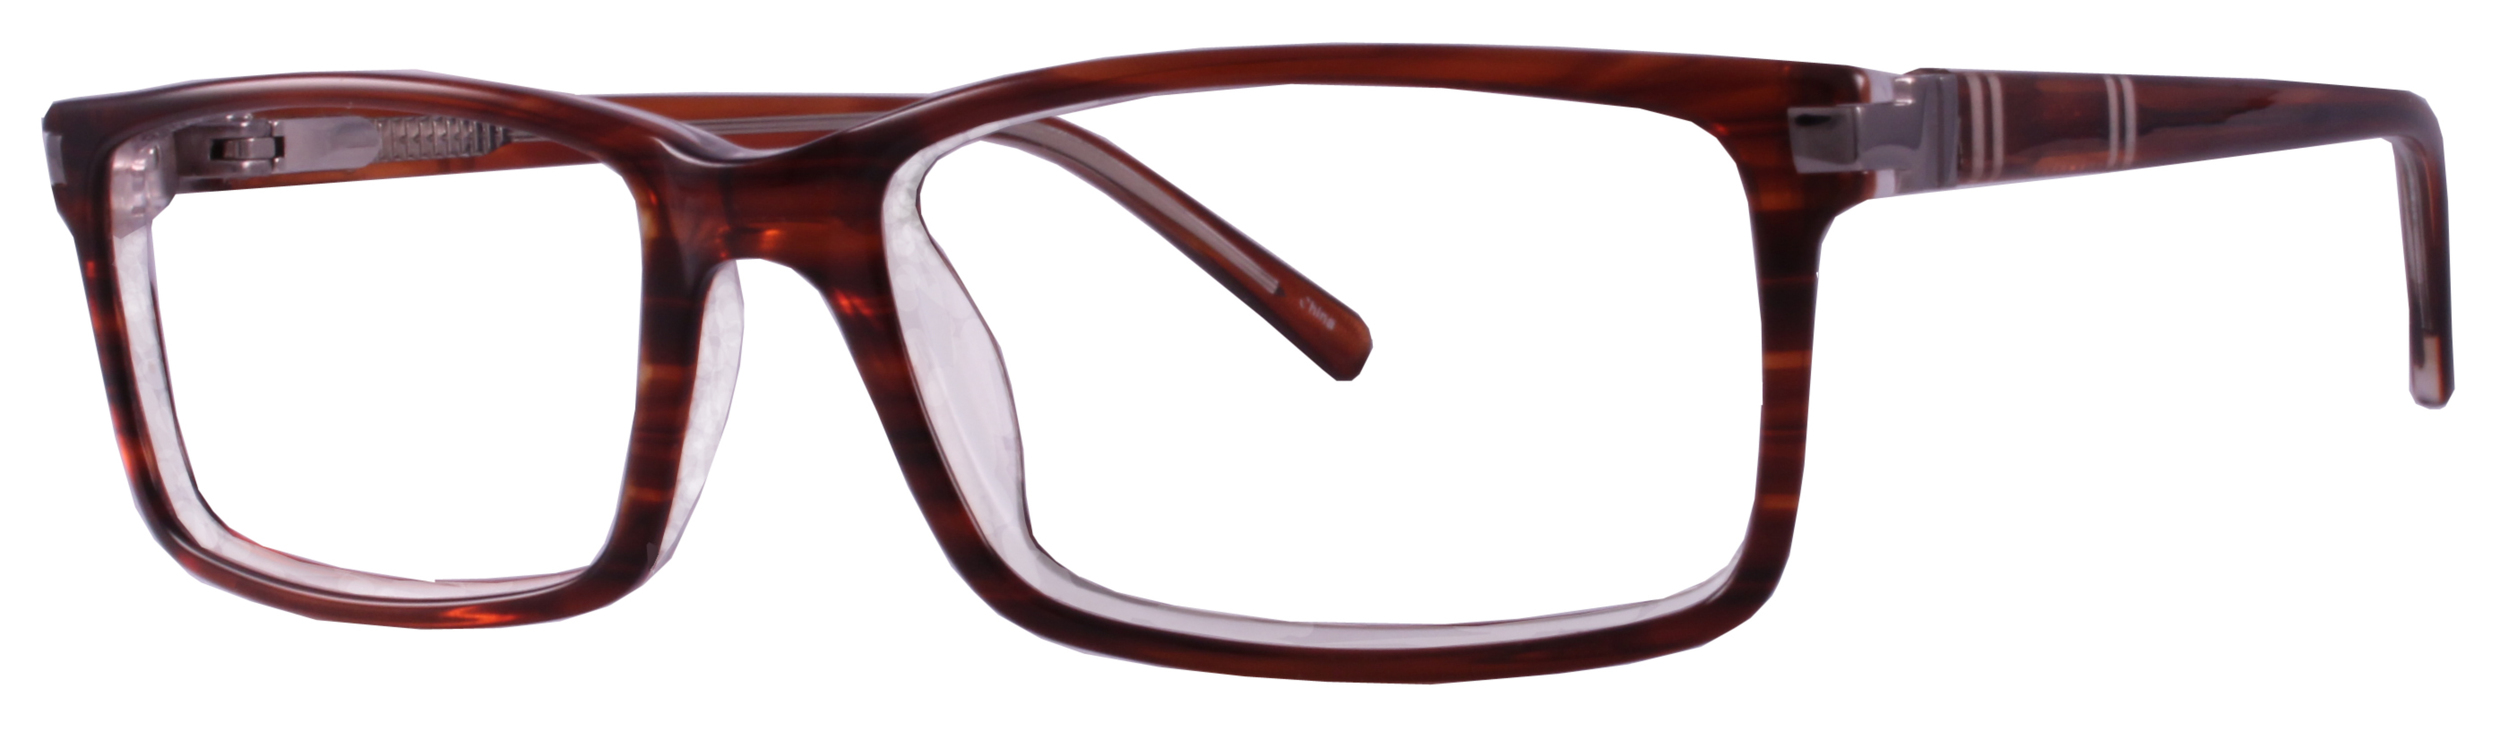 EH-165:  53-18-140 Available in Chestnut or Ash